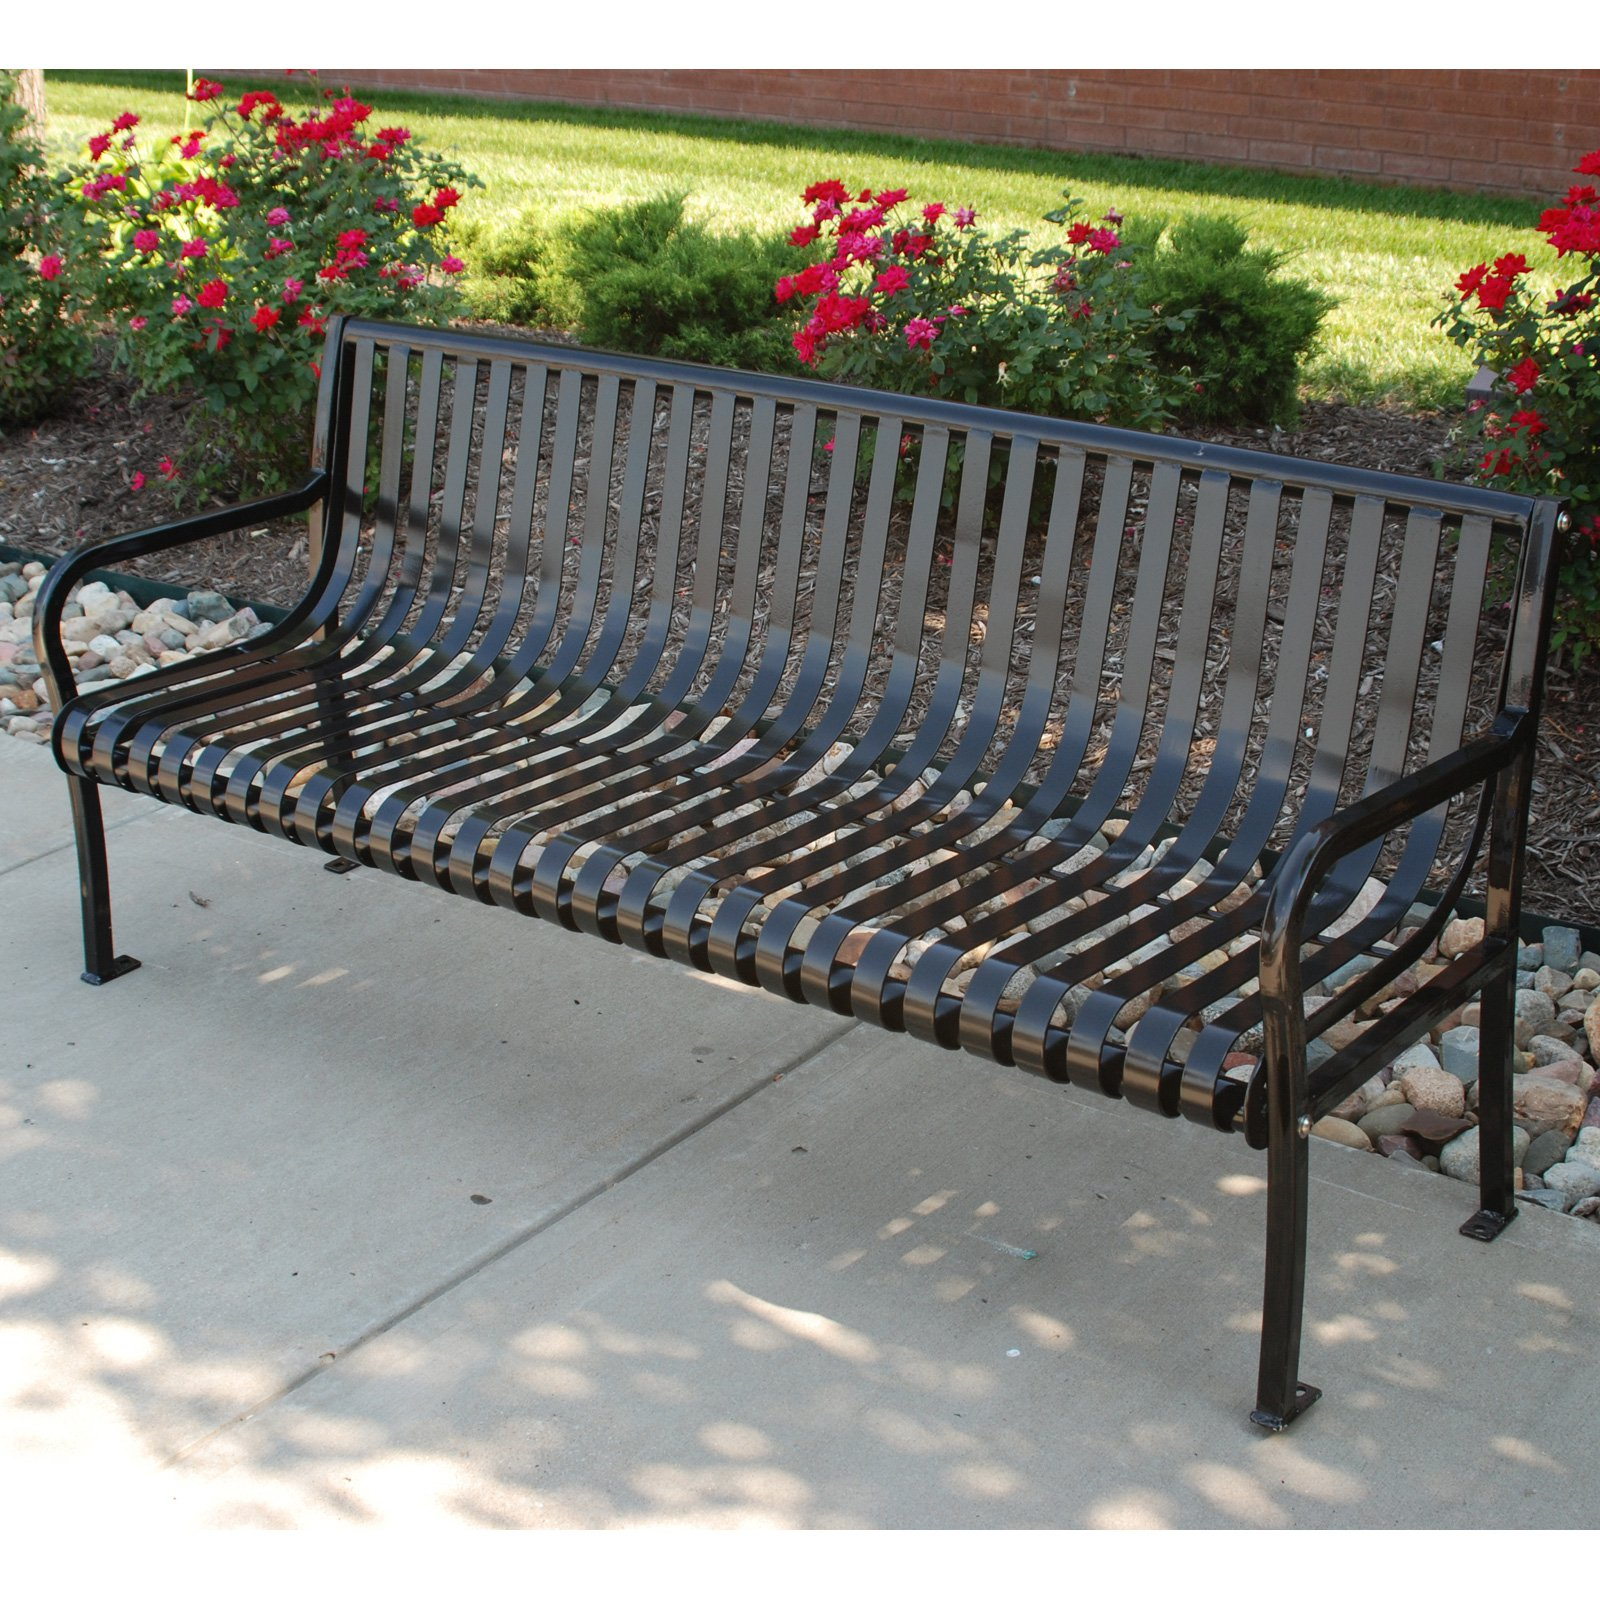 Jayhawk Plastics Aspen 6 ft. Steel Commercial Park Bench